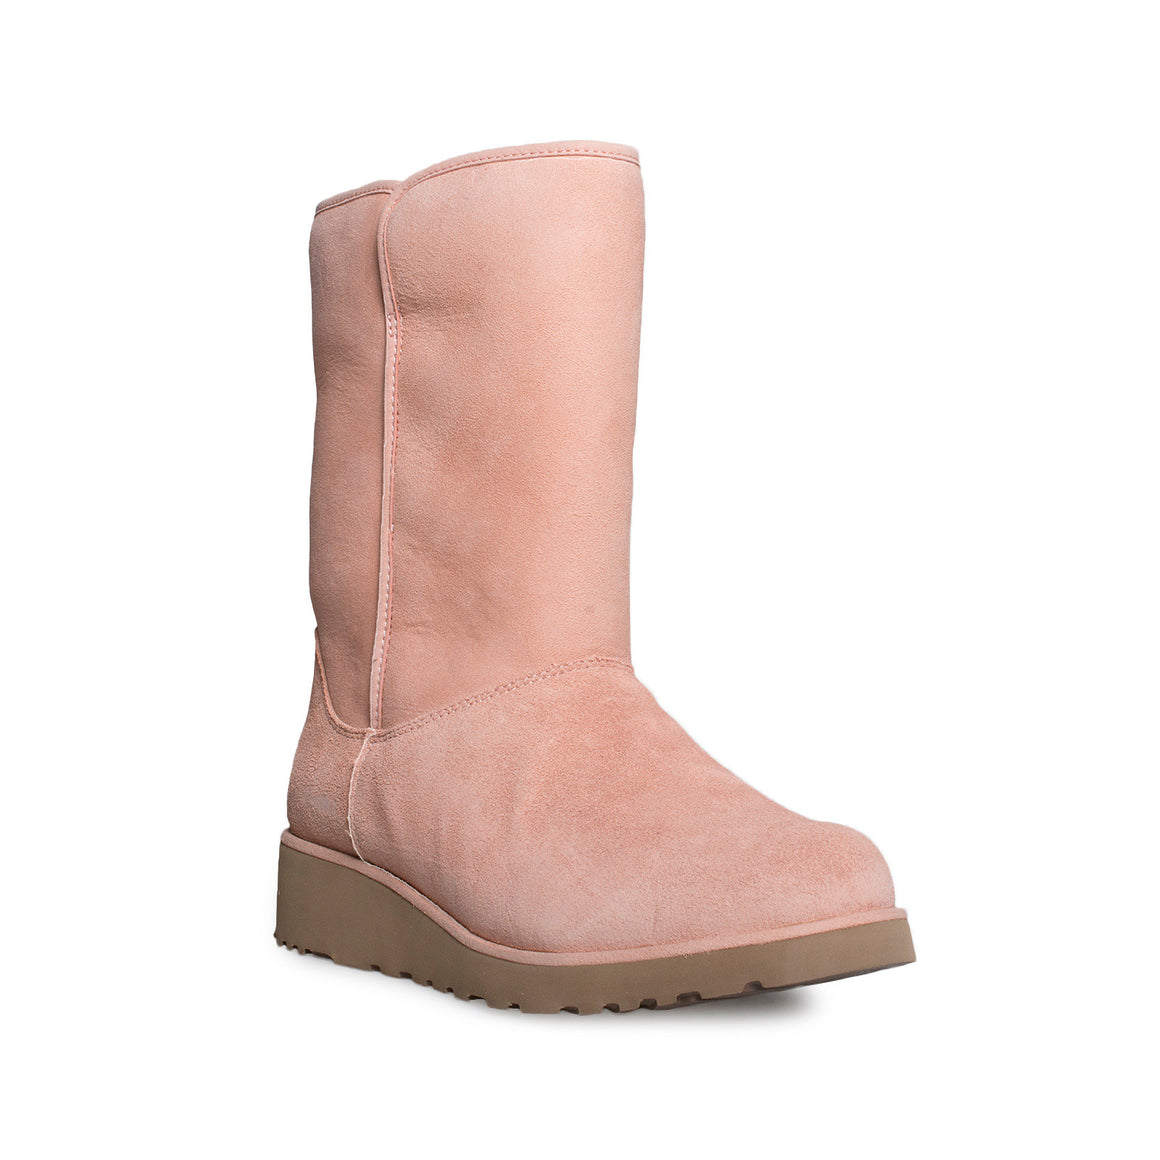 UGG Amie Tropical Peach Boots - Women's